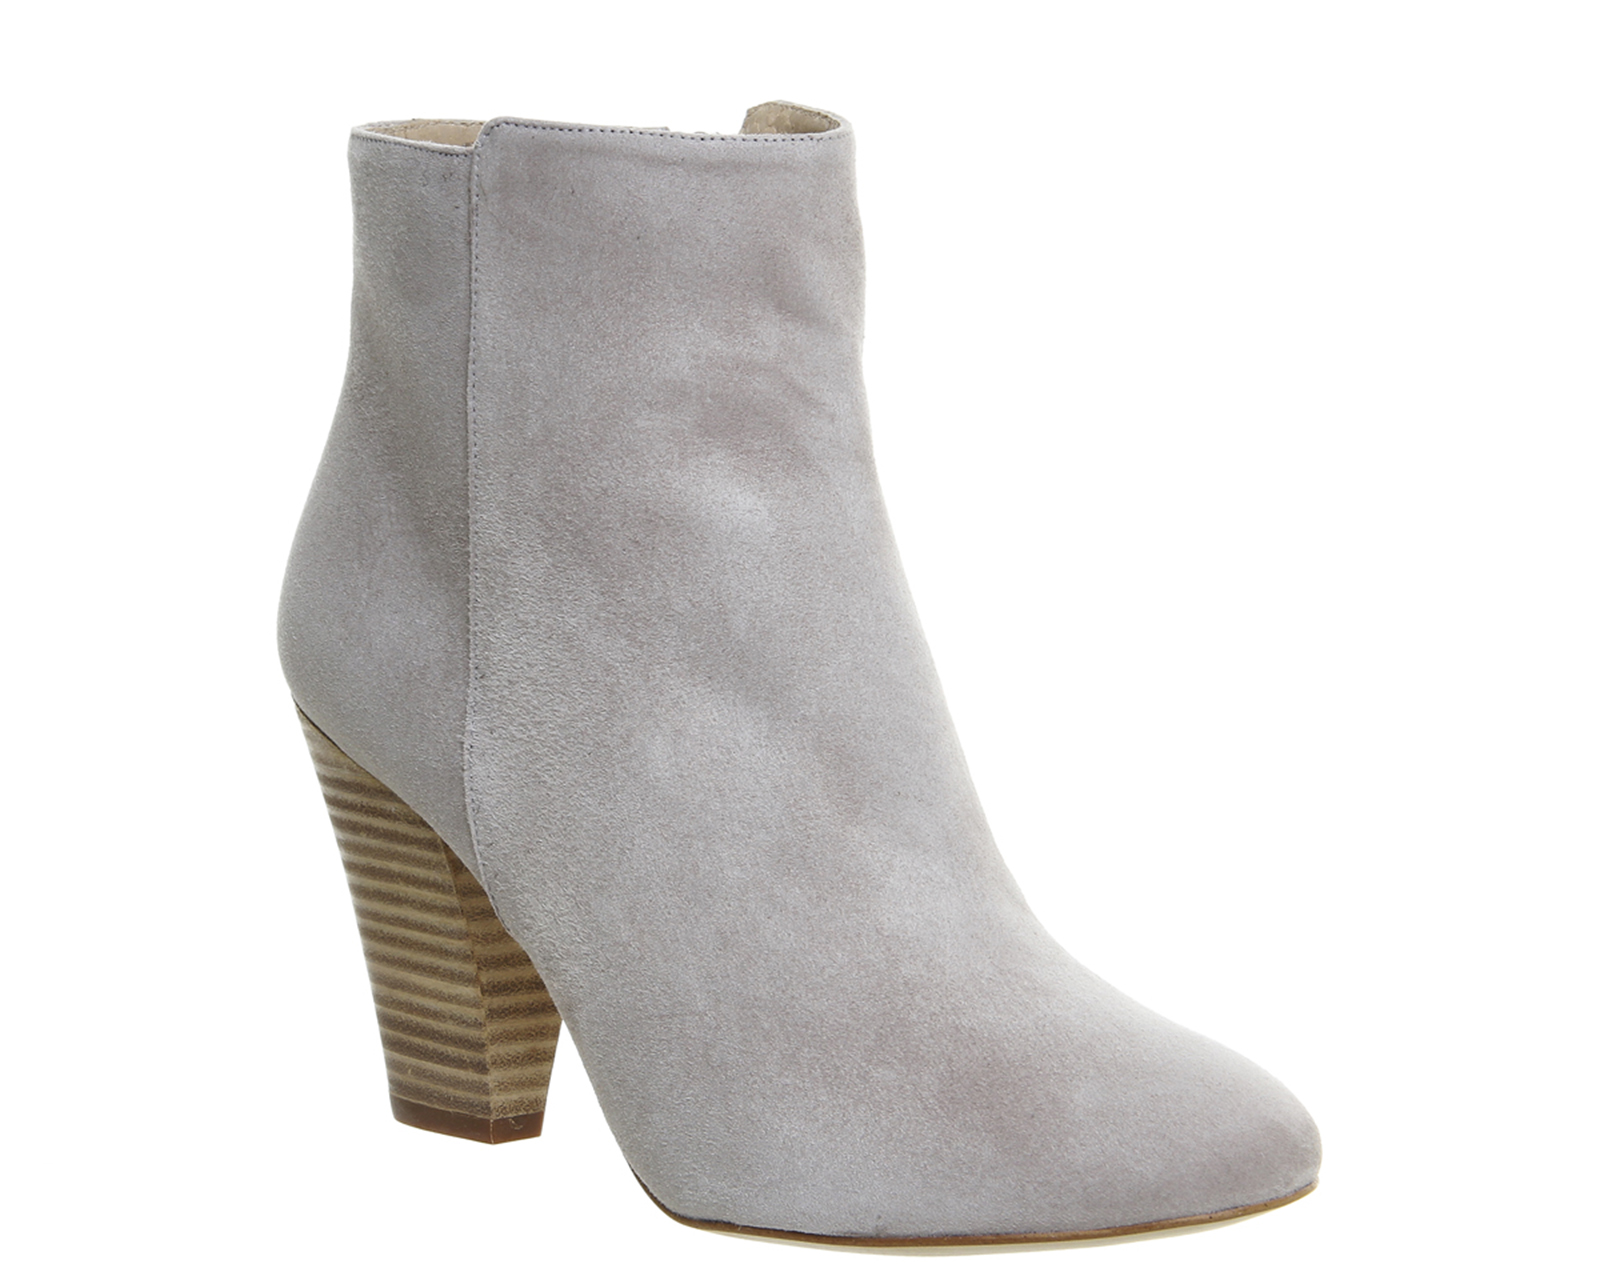 grey suede boots womens-office-flawless-ankle-boot-grey-suede-boots CWHRHCO